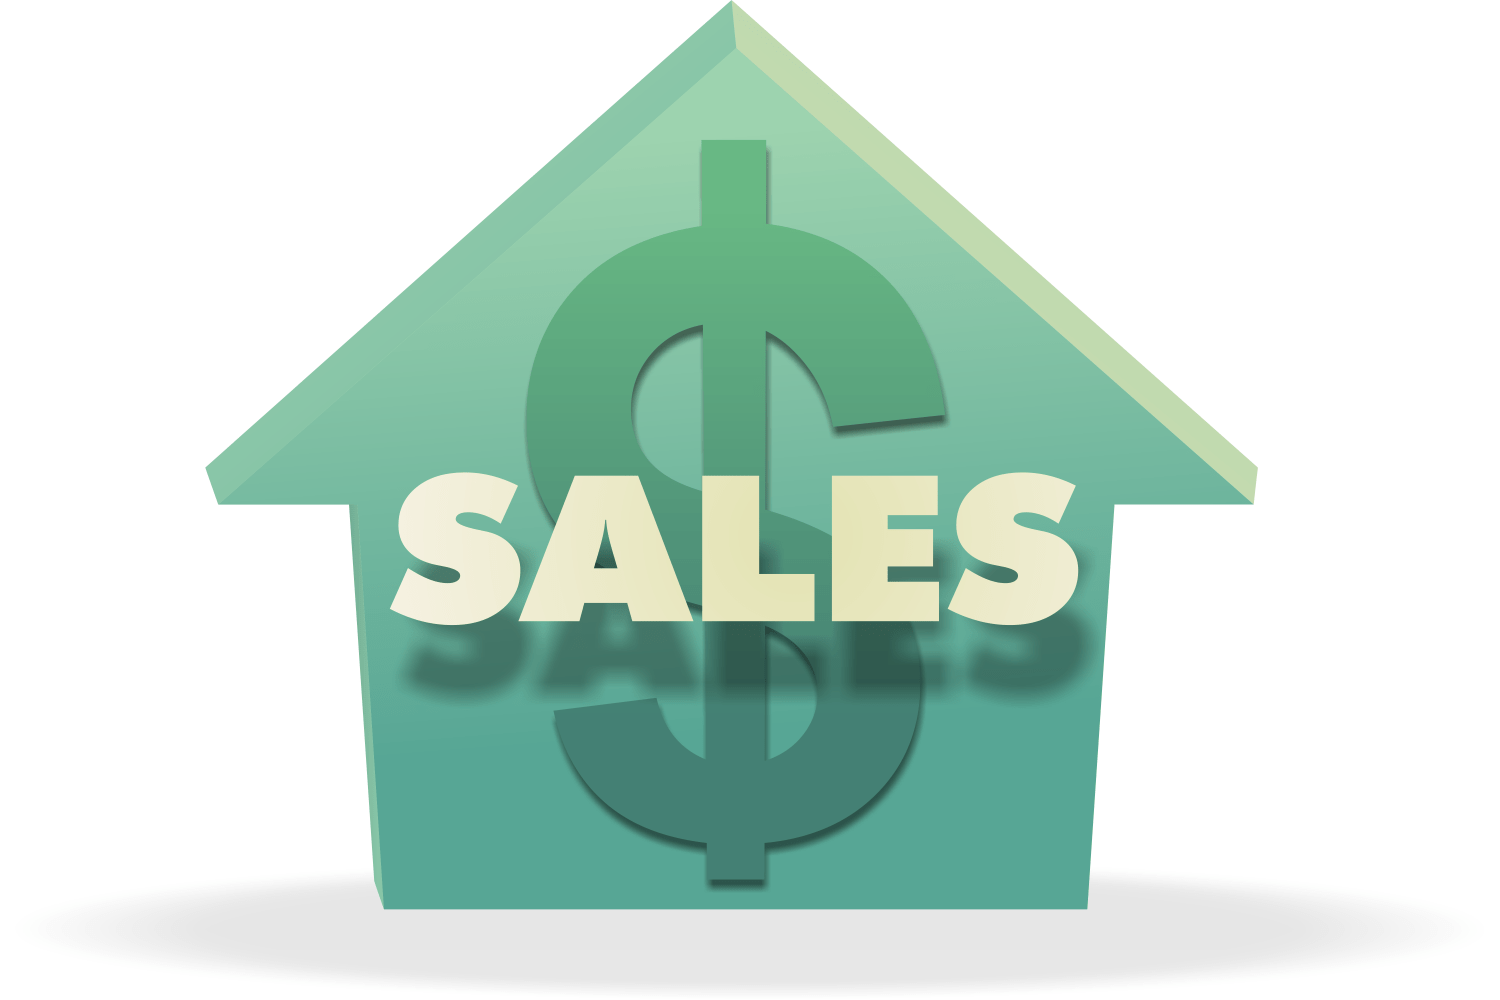 How to make a sales landing page